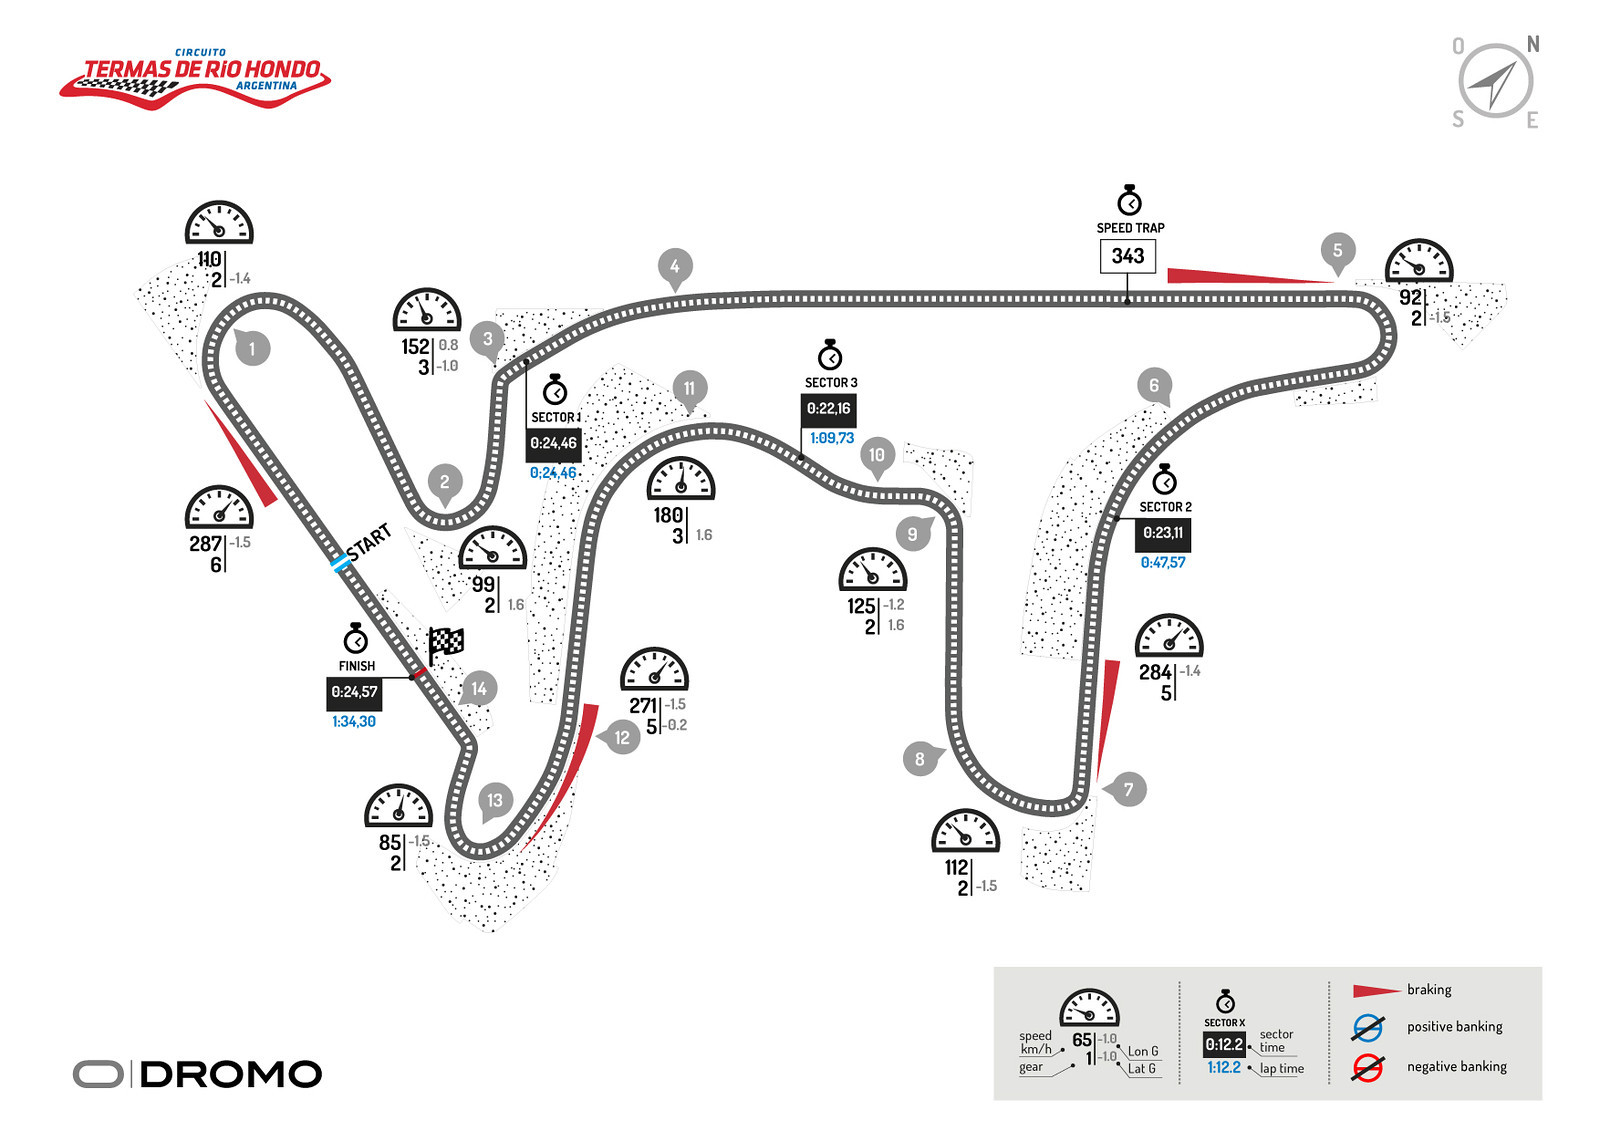 Circuito Termas De Rio Hondo : Introducing the termas de rio hondo circuit of argentina